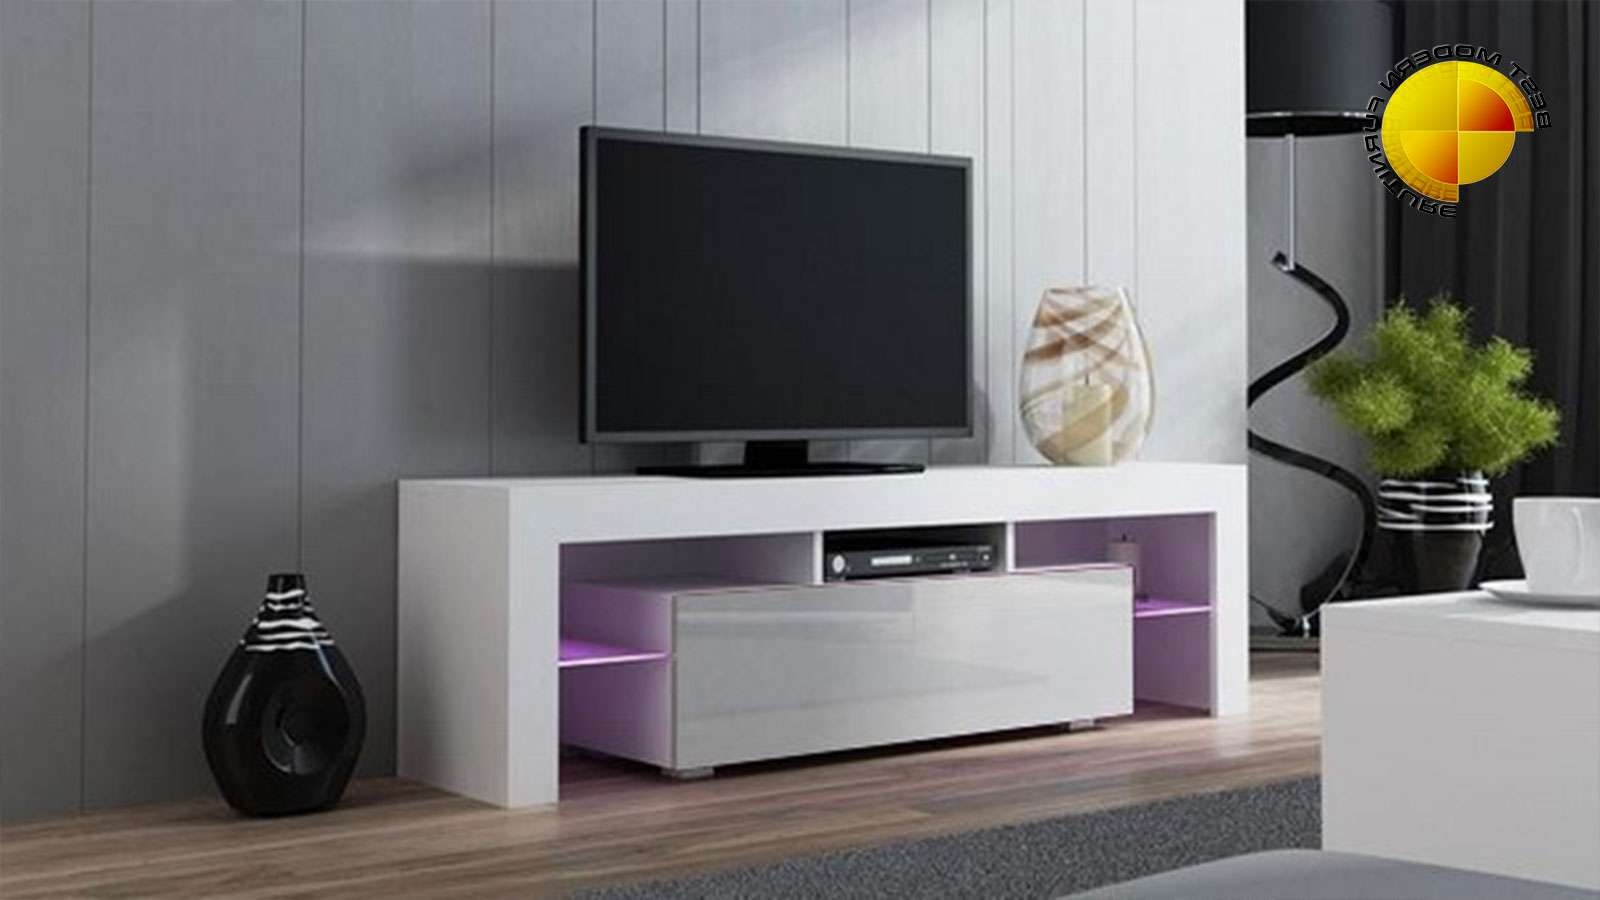 Modern Tv Stand 160cm High Gloss Cabinet Rgb Led Lights White Unit Throughout White High Gloss Tv Stands (View 11 of 20)